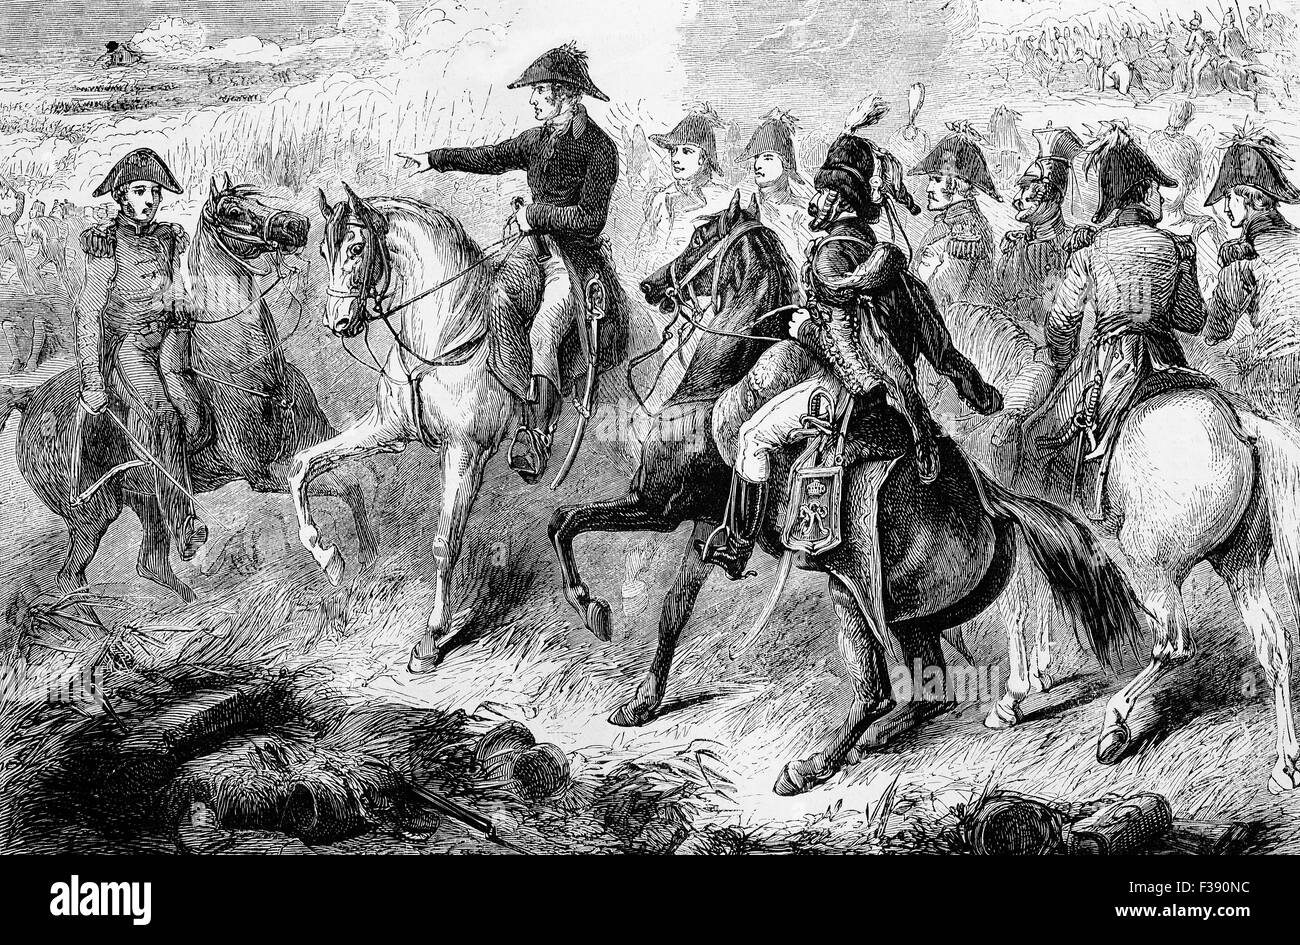 The Duke of Wellington during the Battle of Waterloo. The battle  was fought on Sunday, 18 June 1815, near Waterloo - Stock Image